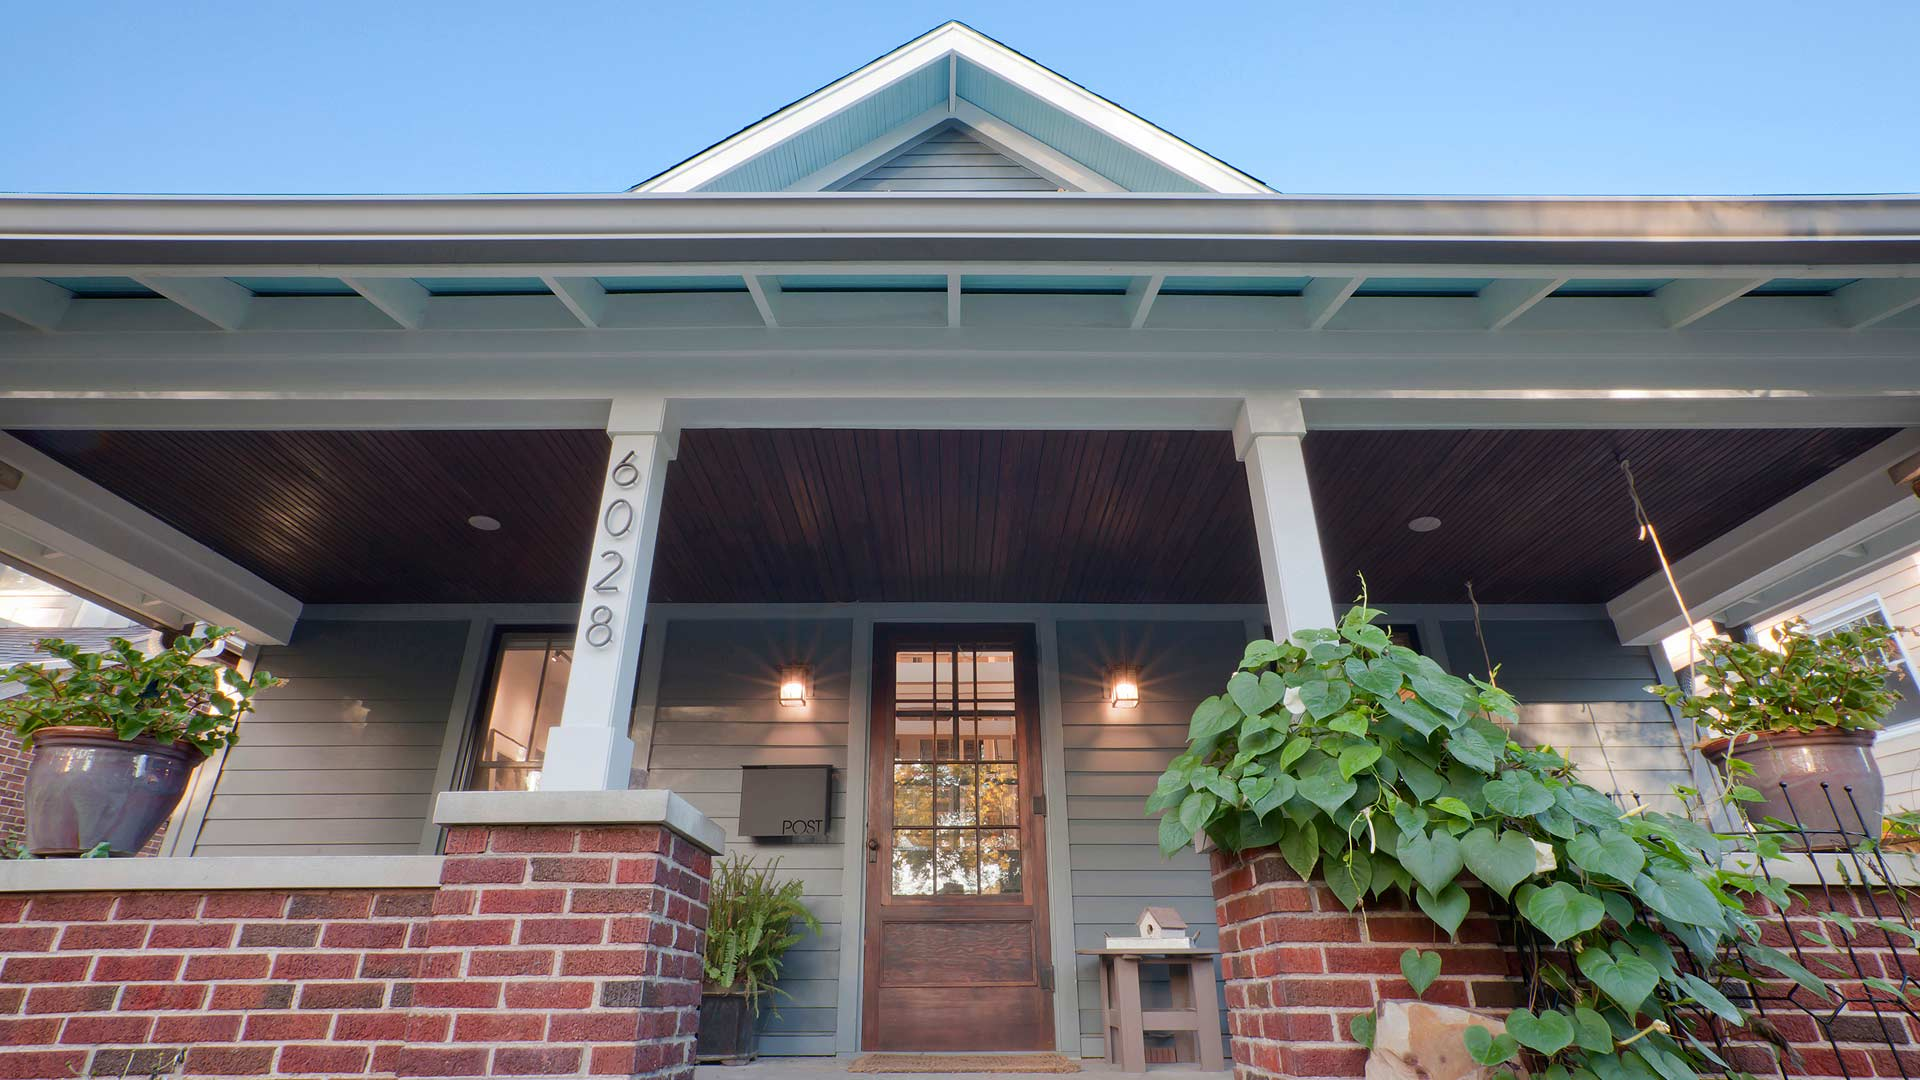 Intimate view of the Craftsman front porch features modern address numerals, original stained beadboard front porch ceiling, modern wall-mounted mailbox, and newly-crafted white-painted exposed rafter tail detailing with light blue-painted eave ceilings in this newly reconstructed Broad Ripple Modern Craftsman Dwelling on Carrollton Avenue - Indianapolis, Indiana